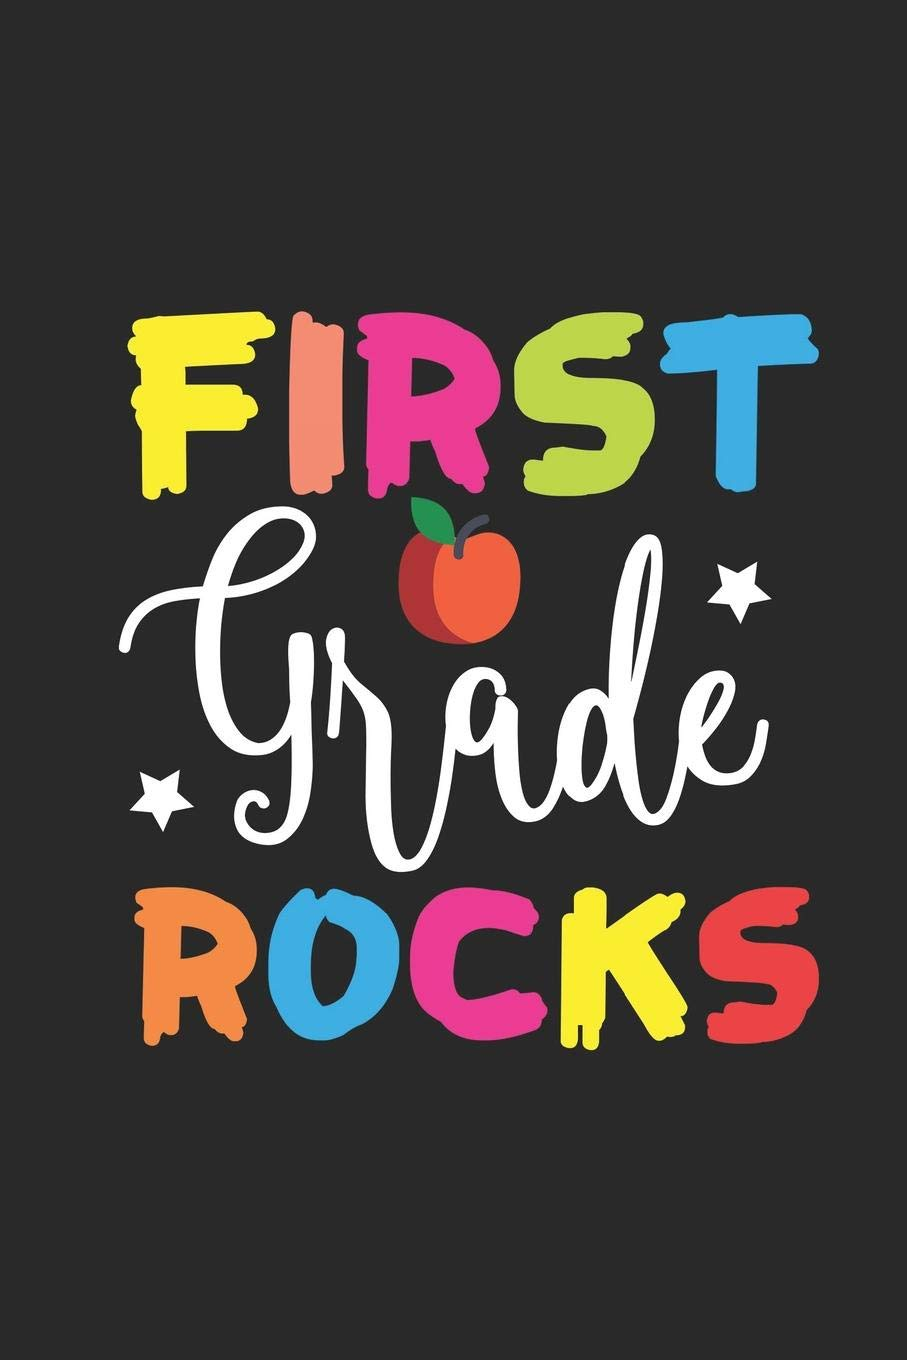 First Grade Rocks: Back To School Supplies, Primary Composition Notebook,  Handwriting Practice Workbook For 1st Grade Students: Publishing, Magic  Journal: 9781082813481: Amazon.com: Books